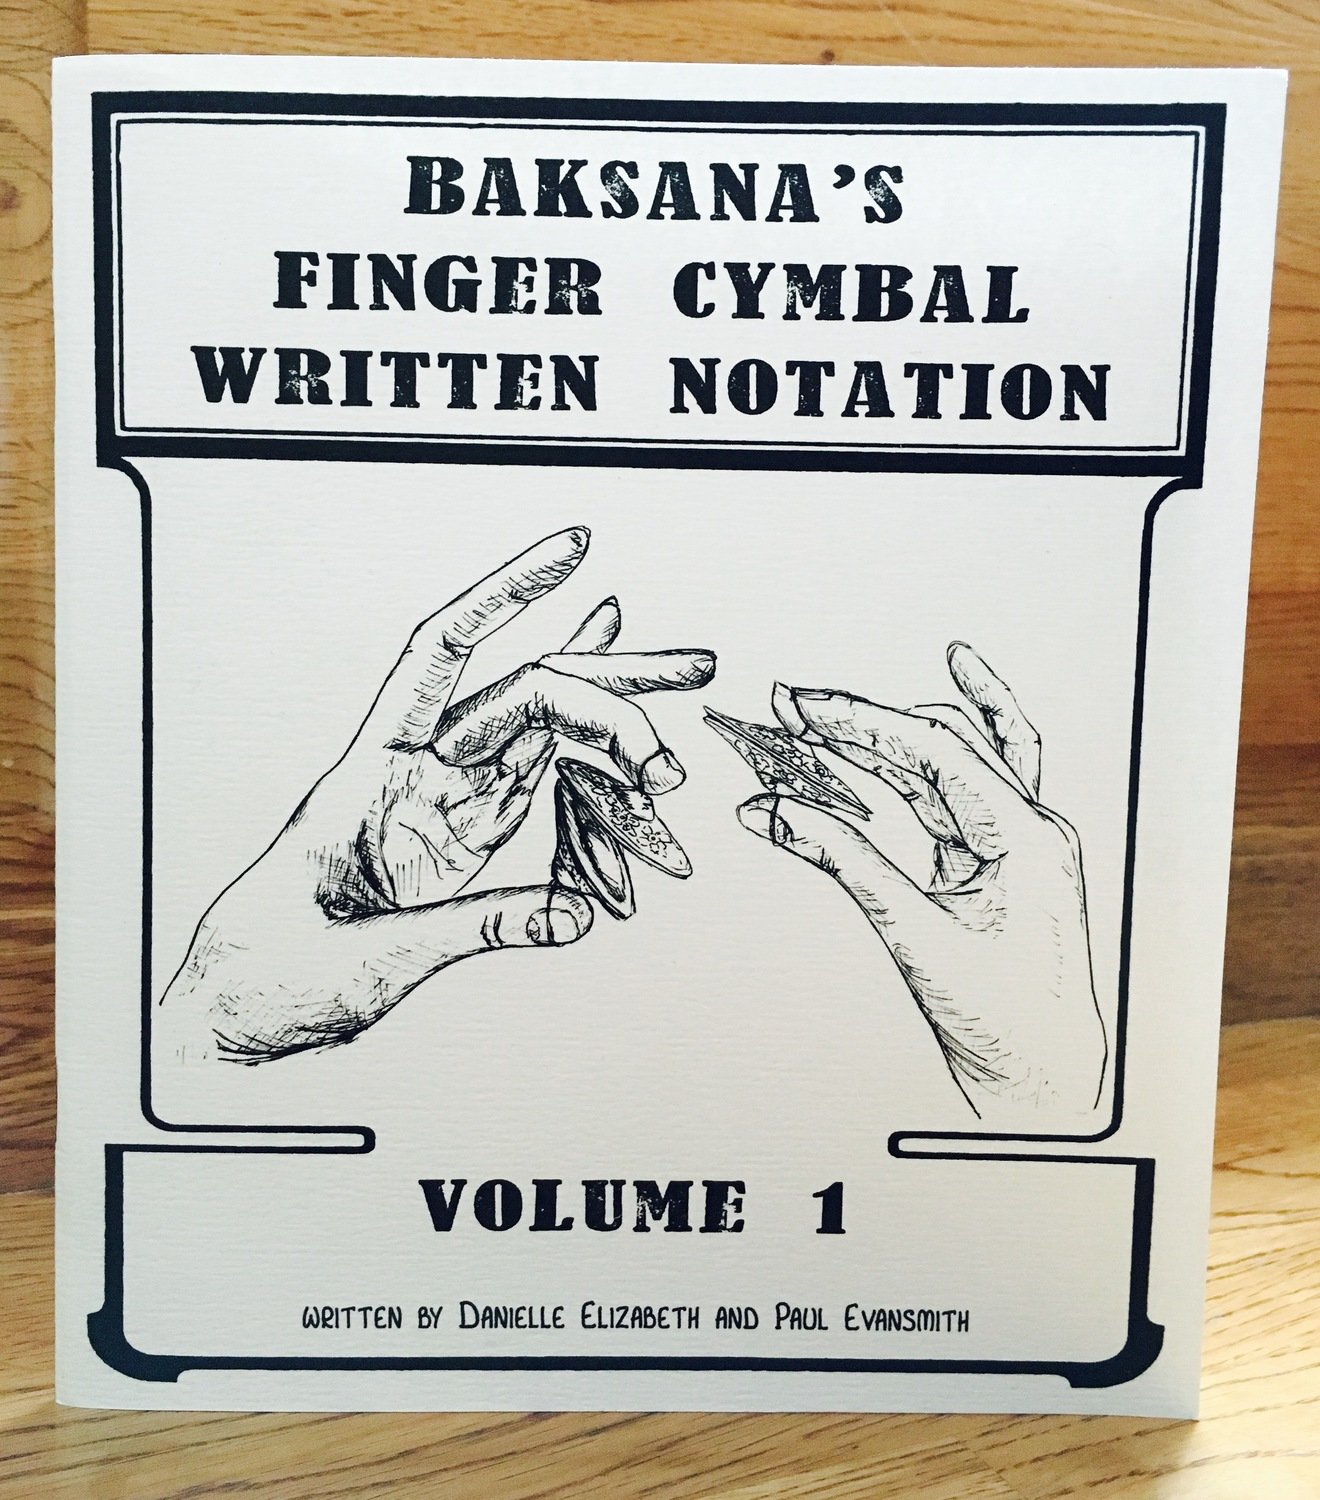 Baksana's Finger Cymbal Notation Vol. 1